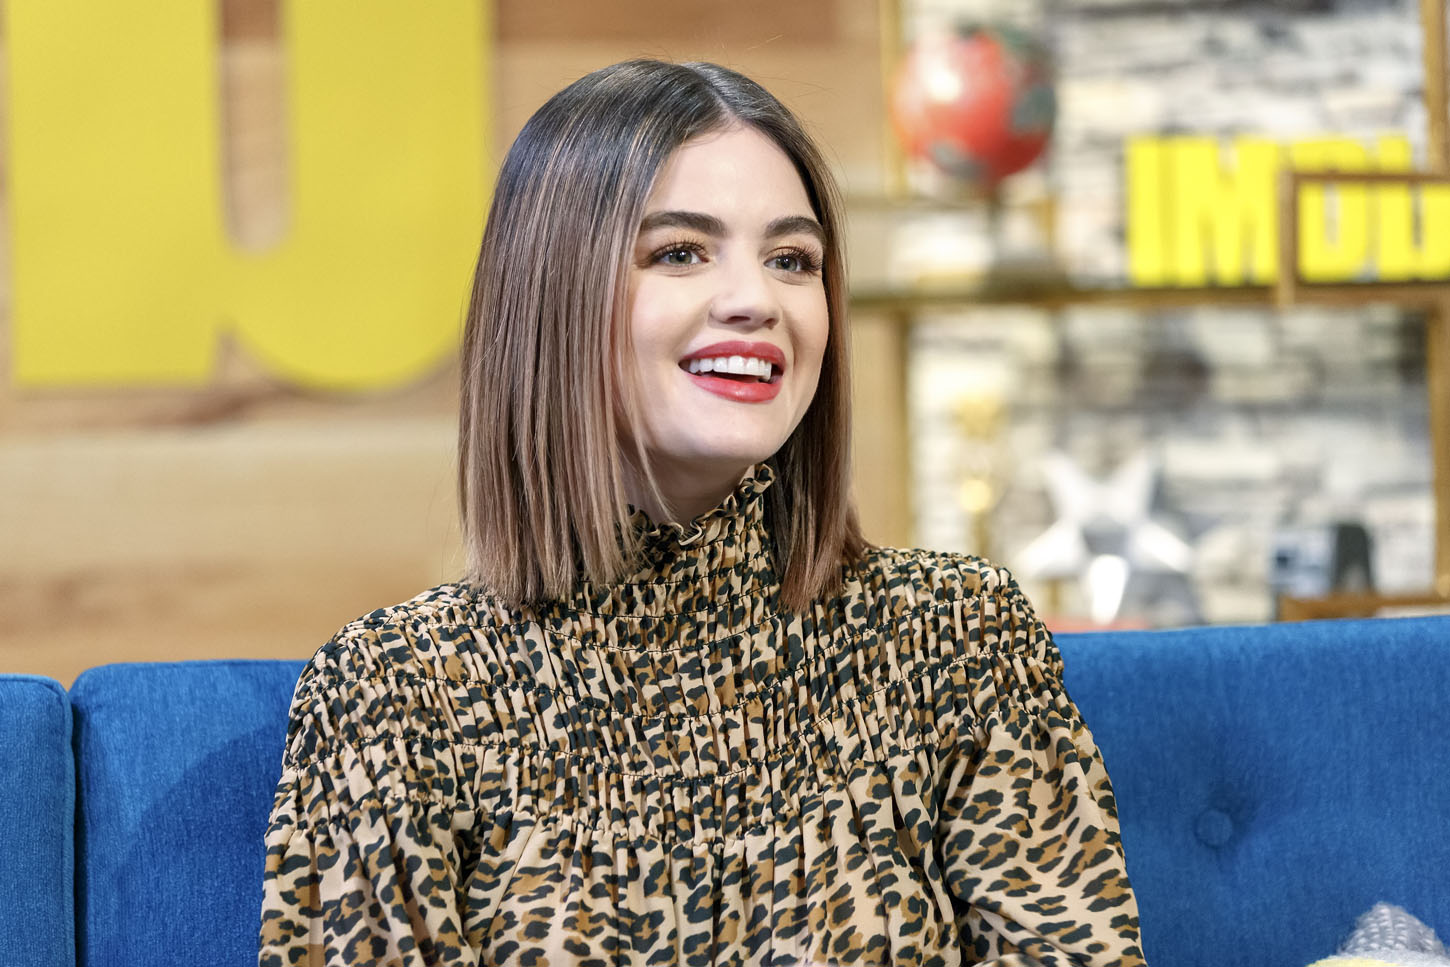 STUDIO CITY, CA - APRIL 03:  Lucy Hale visits 'The IMDb Show' on April 3, 2018 in Studio City, California. This episode of 'The IMDb Show' airs on April 12, 2018.  (Photo by Rich Polk/Getty Images for IMDb)